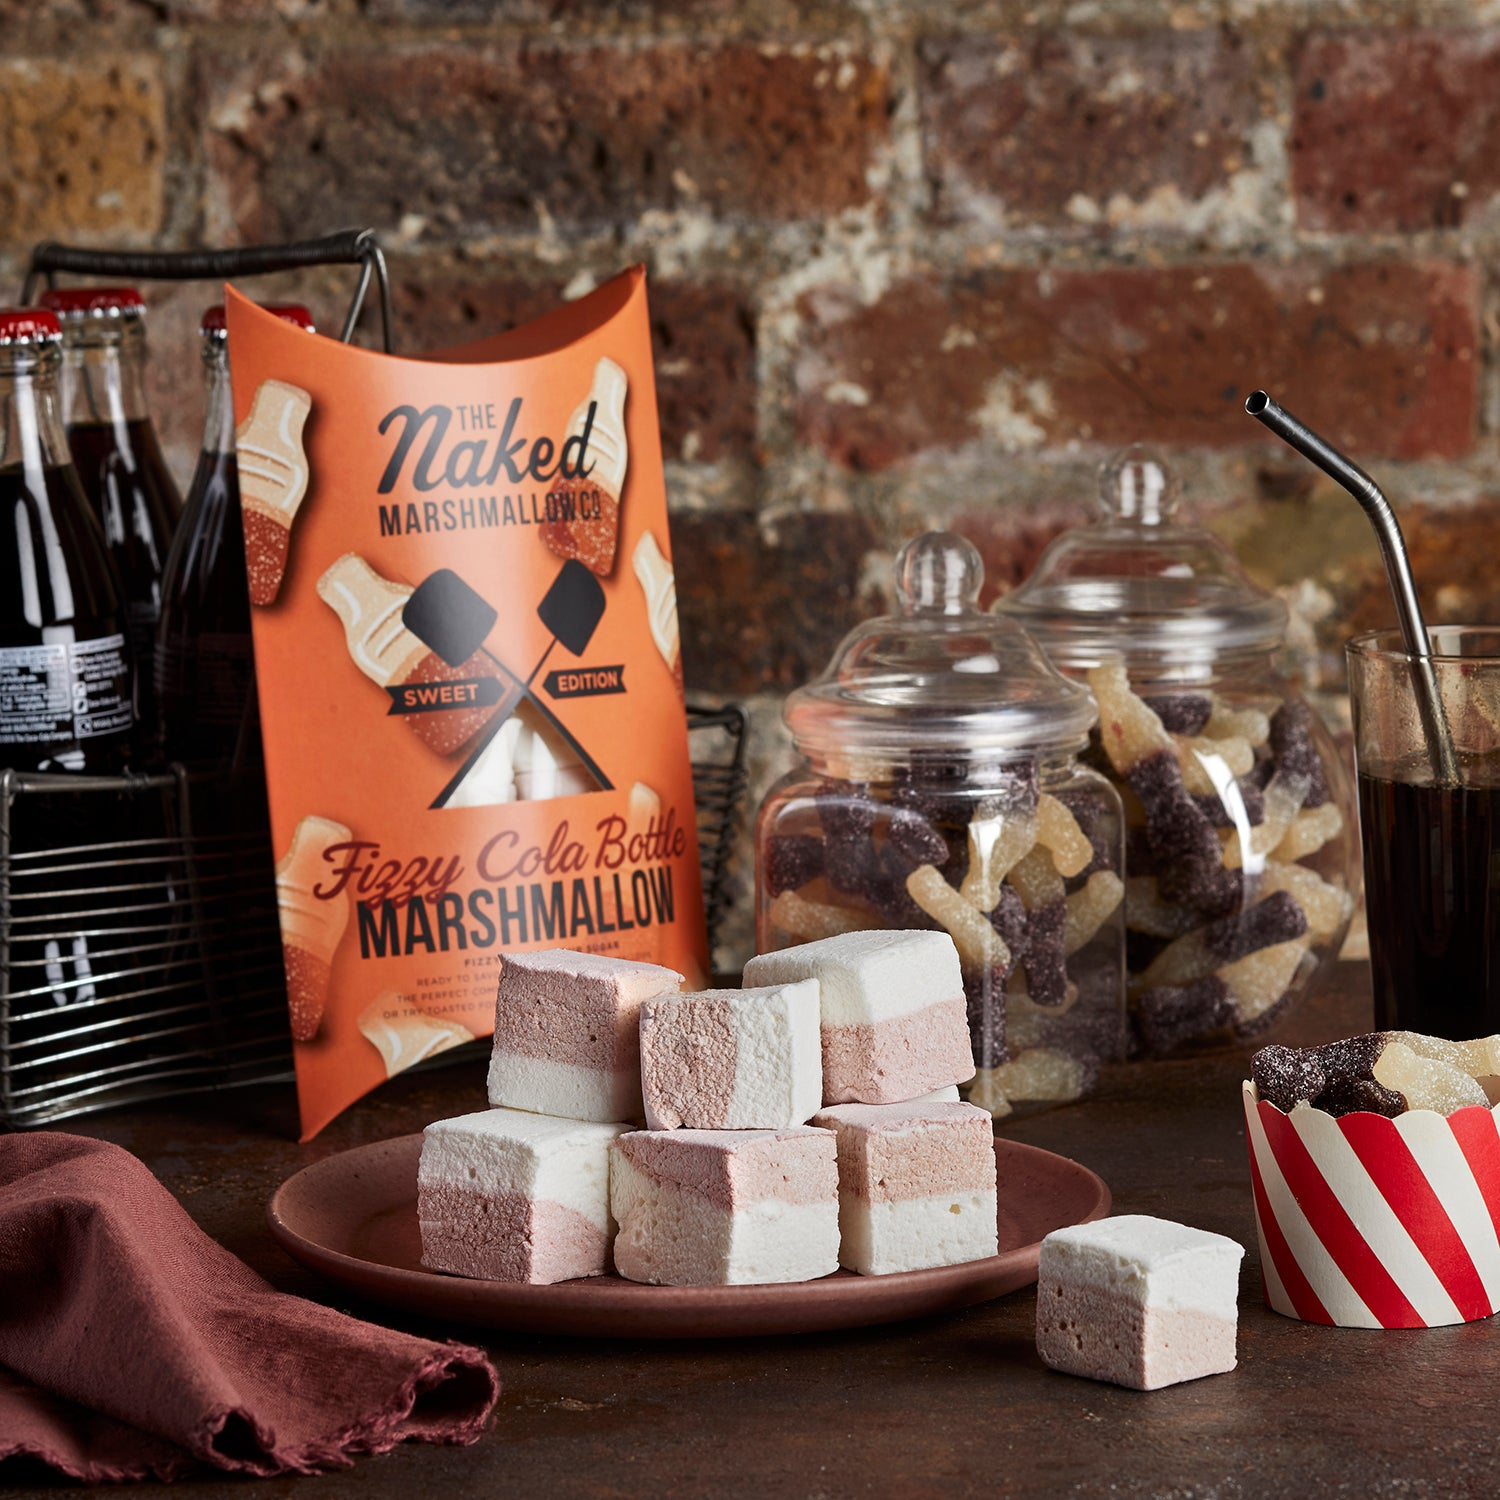 Fizzy Cola Bottle Gourmet Marshmallows